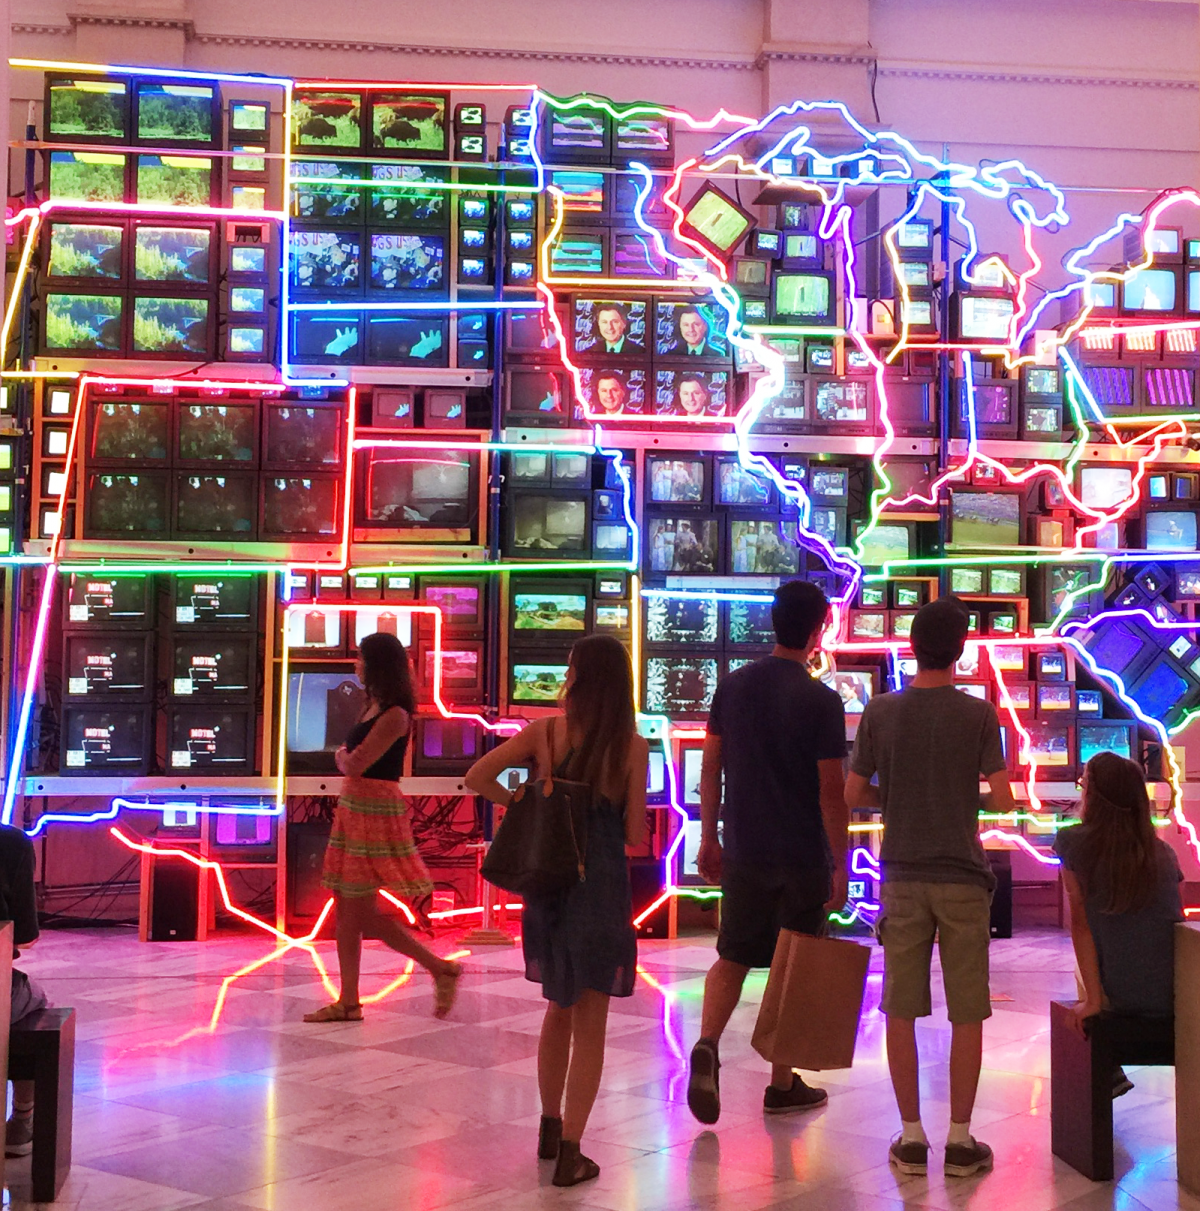 """Visitors viewing """"Electronic Superhighway"""" installation, made up of video monitors and neon lights."""